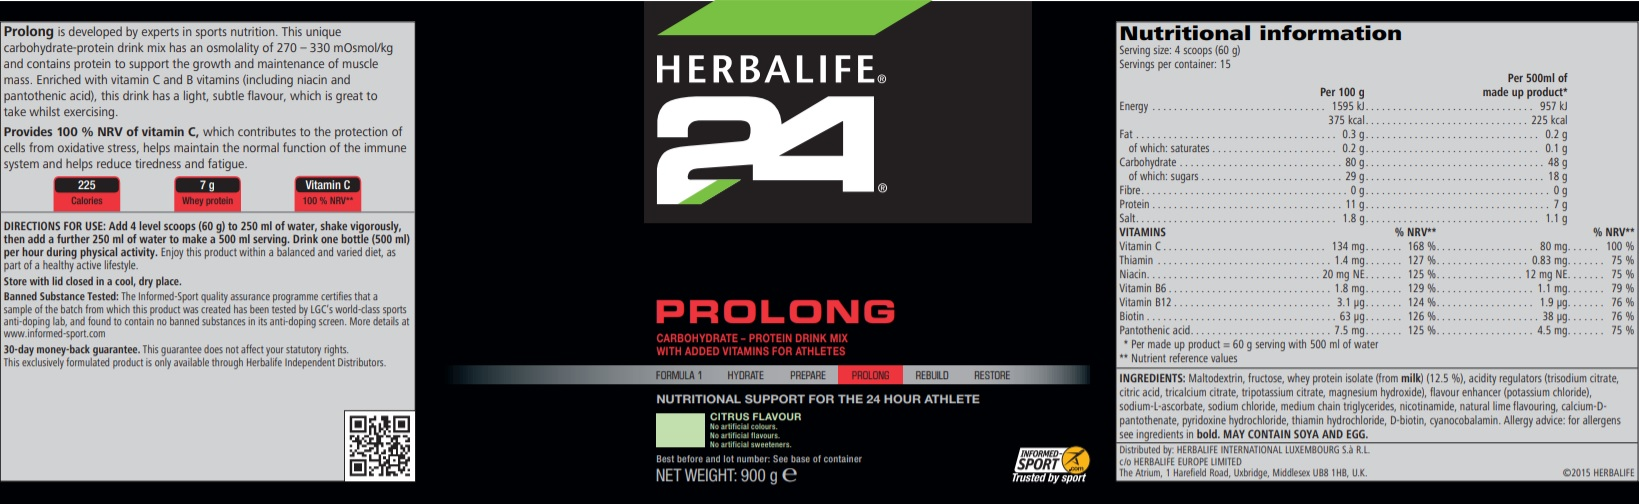 Nutritional Information Herbalife Prolong